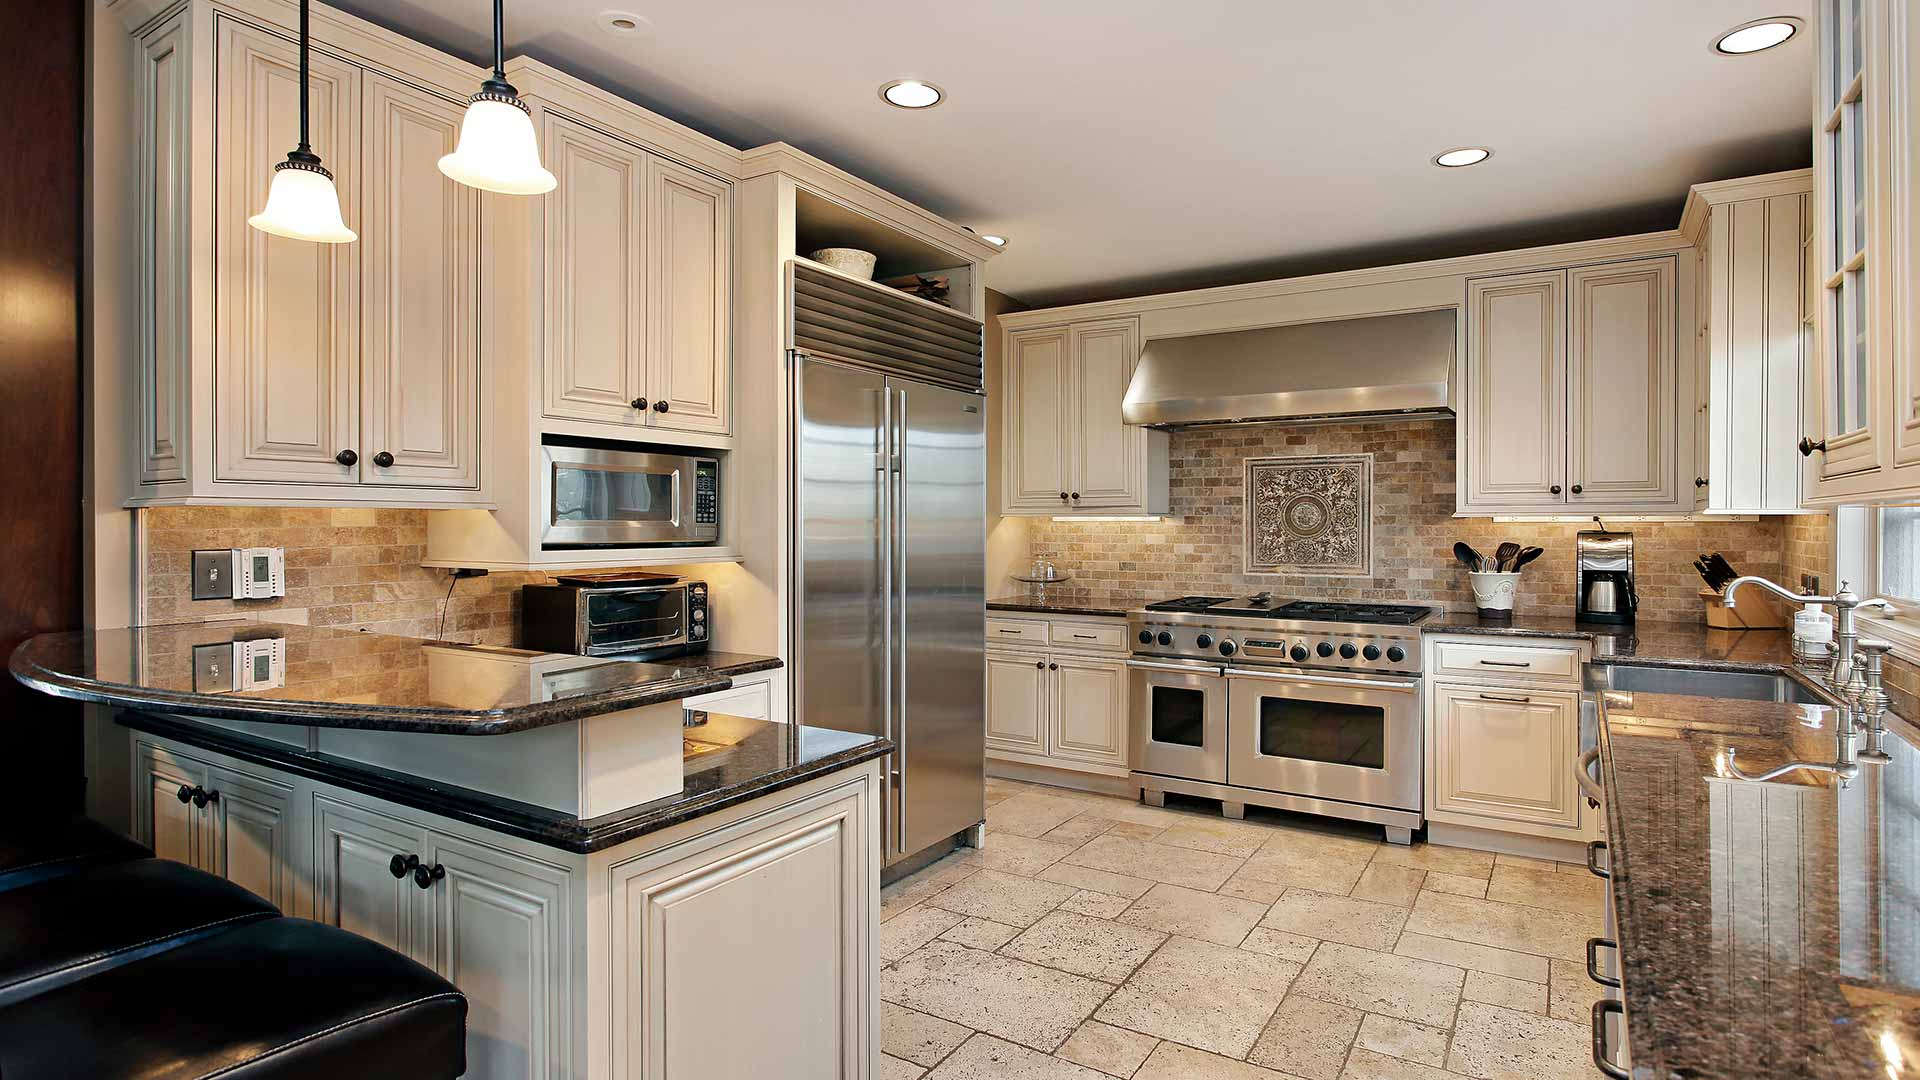 What Is the Best Type of Lighting for Your Kitchen Remodel?